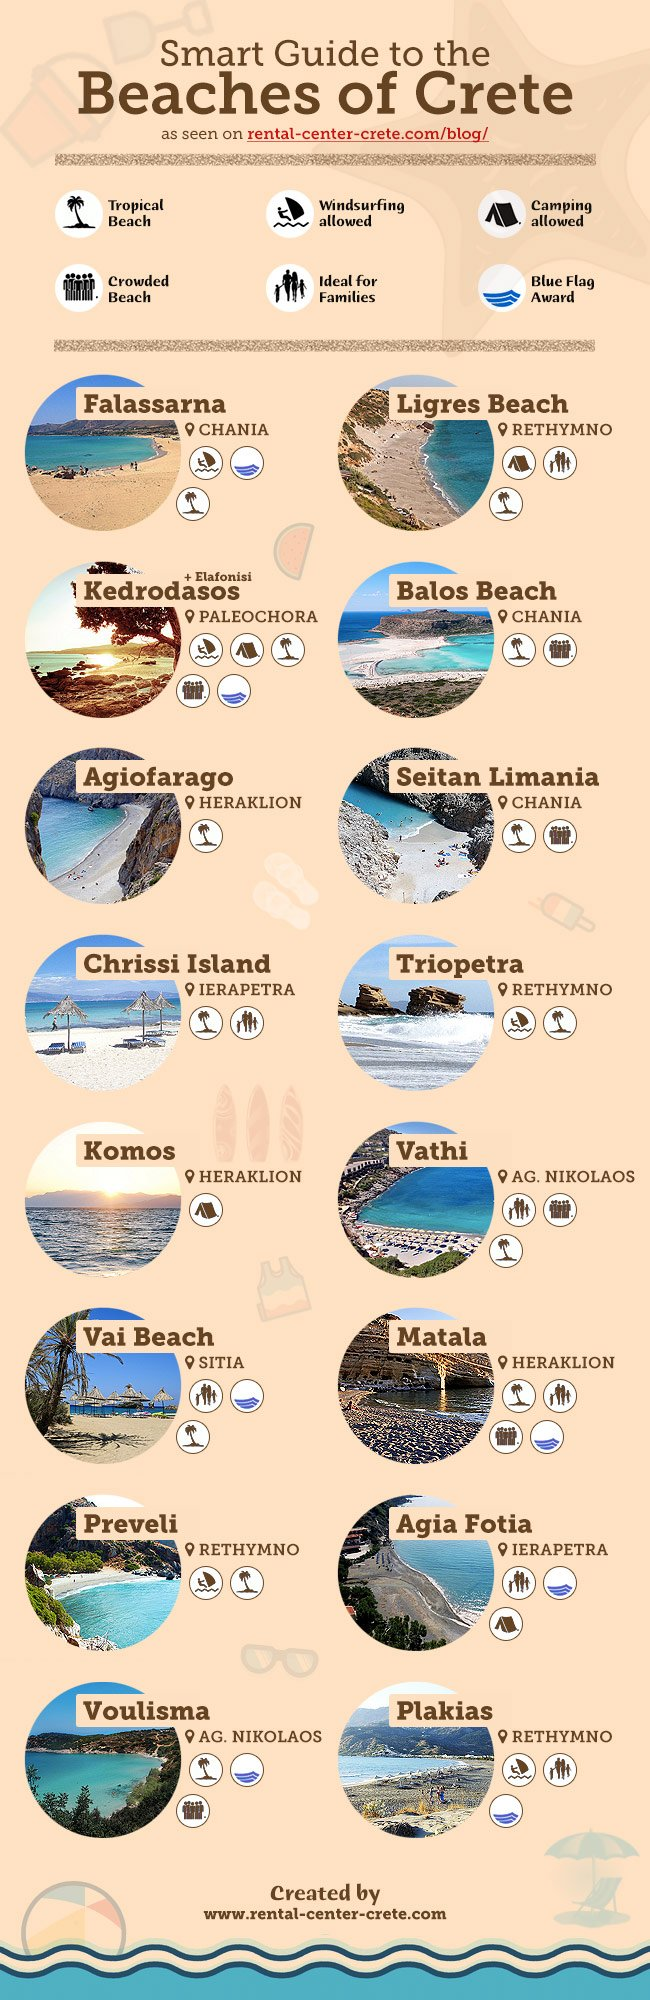 Infographic: Smart Guide to the Beaches of Crete by Rental Center Crete.